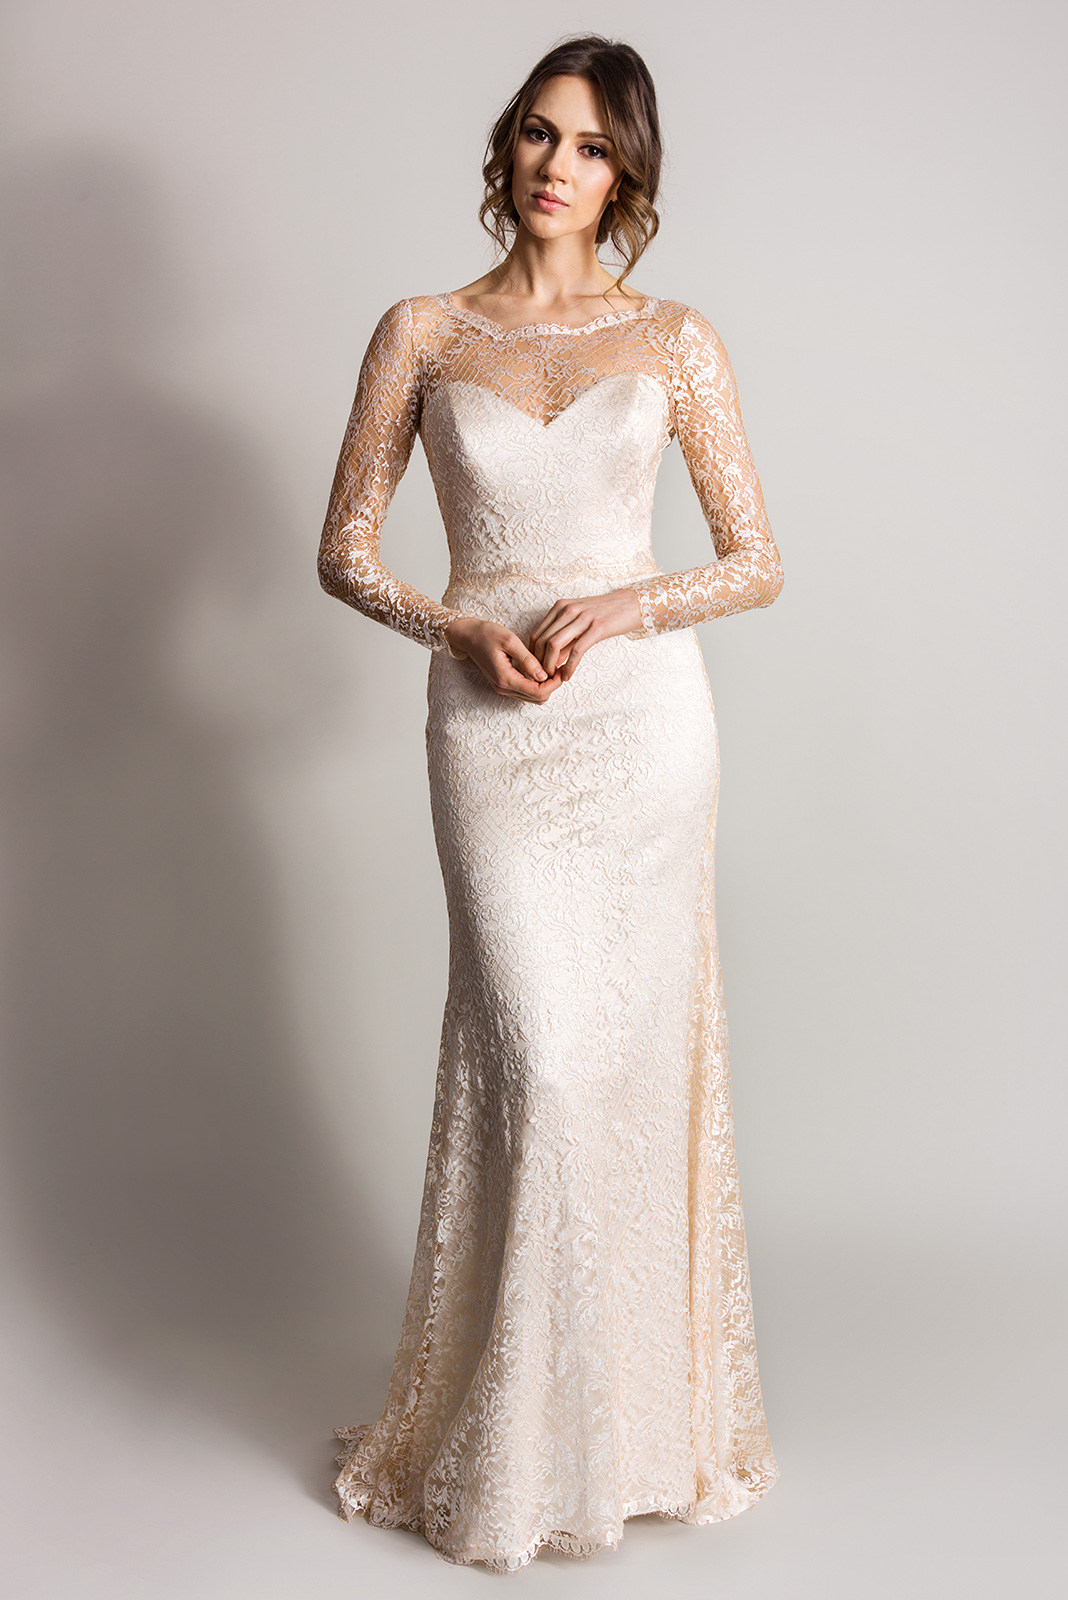 Coloured Wedding Dresses From Top UK Bridal Designers